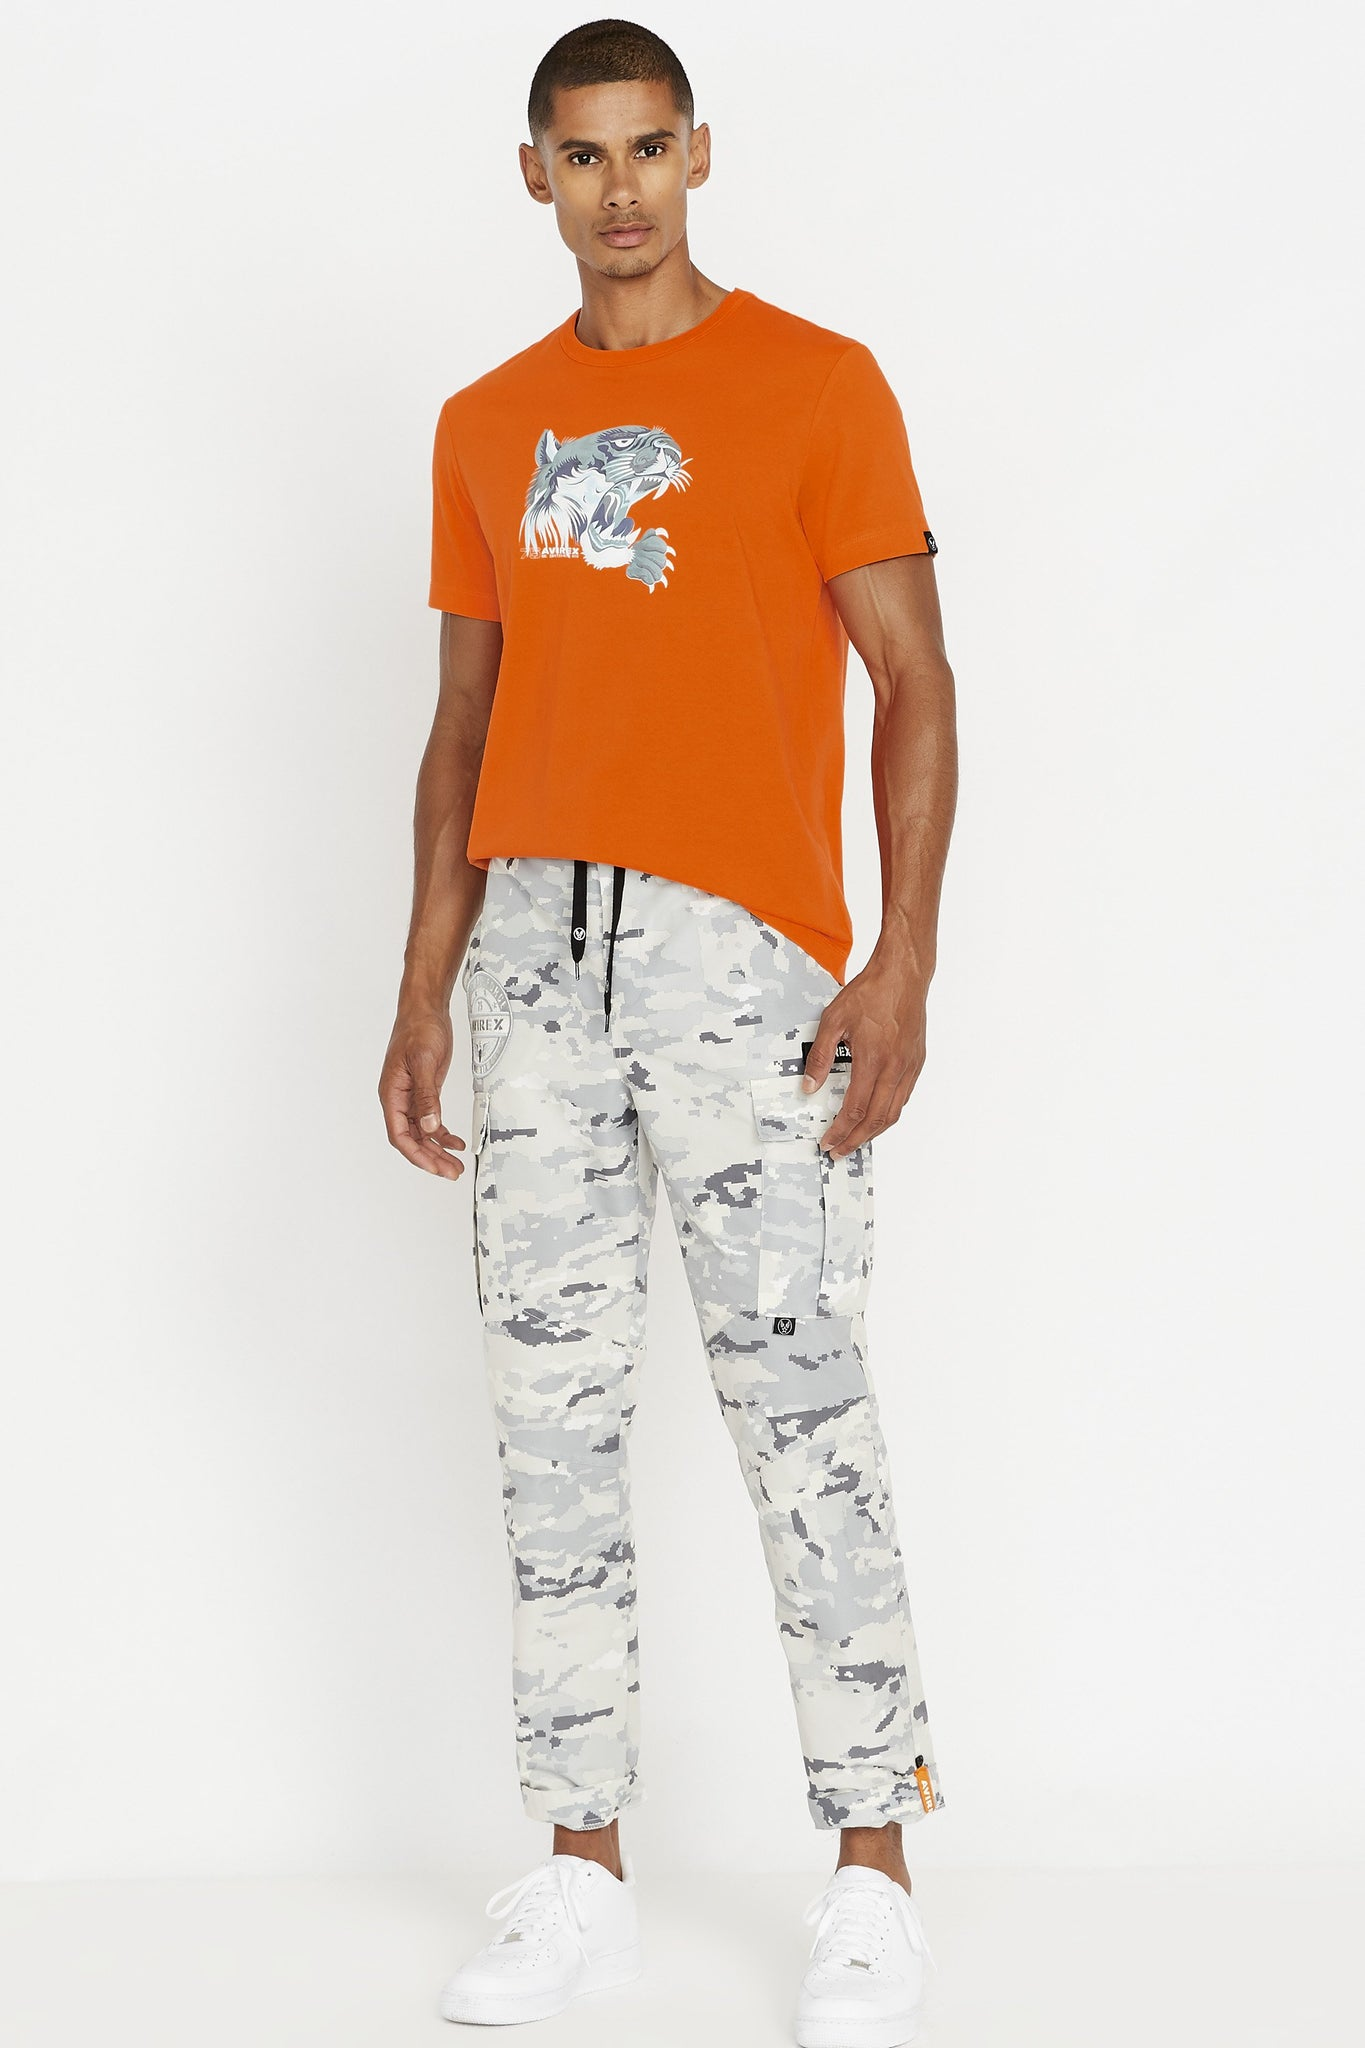 Full view of men wearing an orange short sleeve crew neck T-shirt with light grey tiger print on chest and light grey camo pants